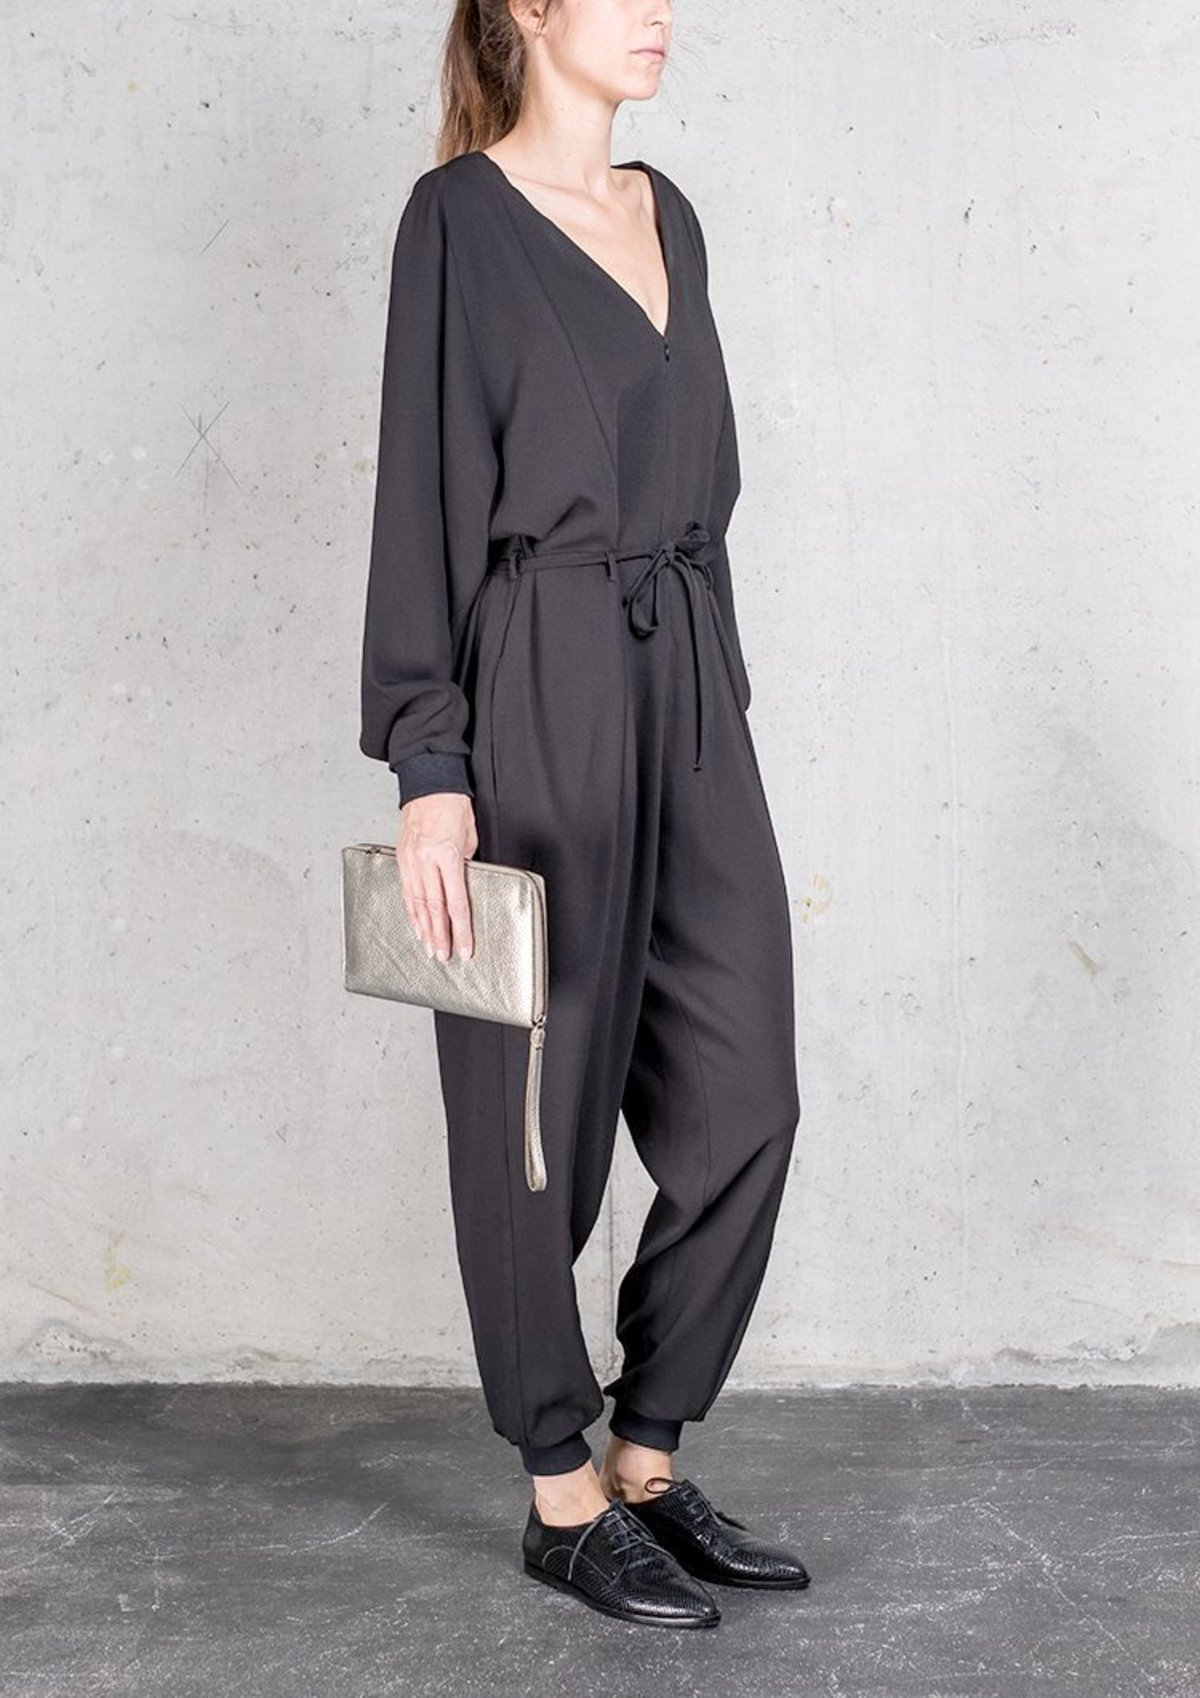 b3152c9975e4 Berenik OVERSIZED HEAVY DRAPING LONG JUMPSUIT - black